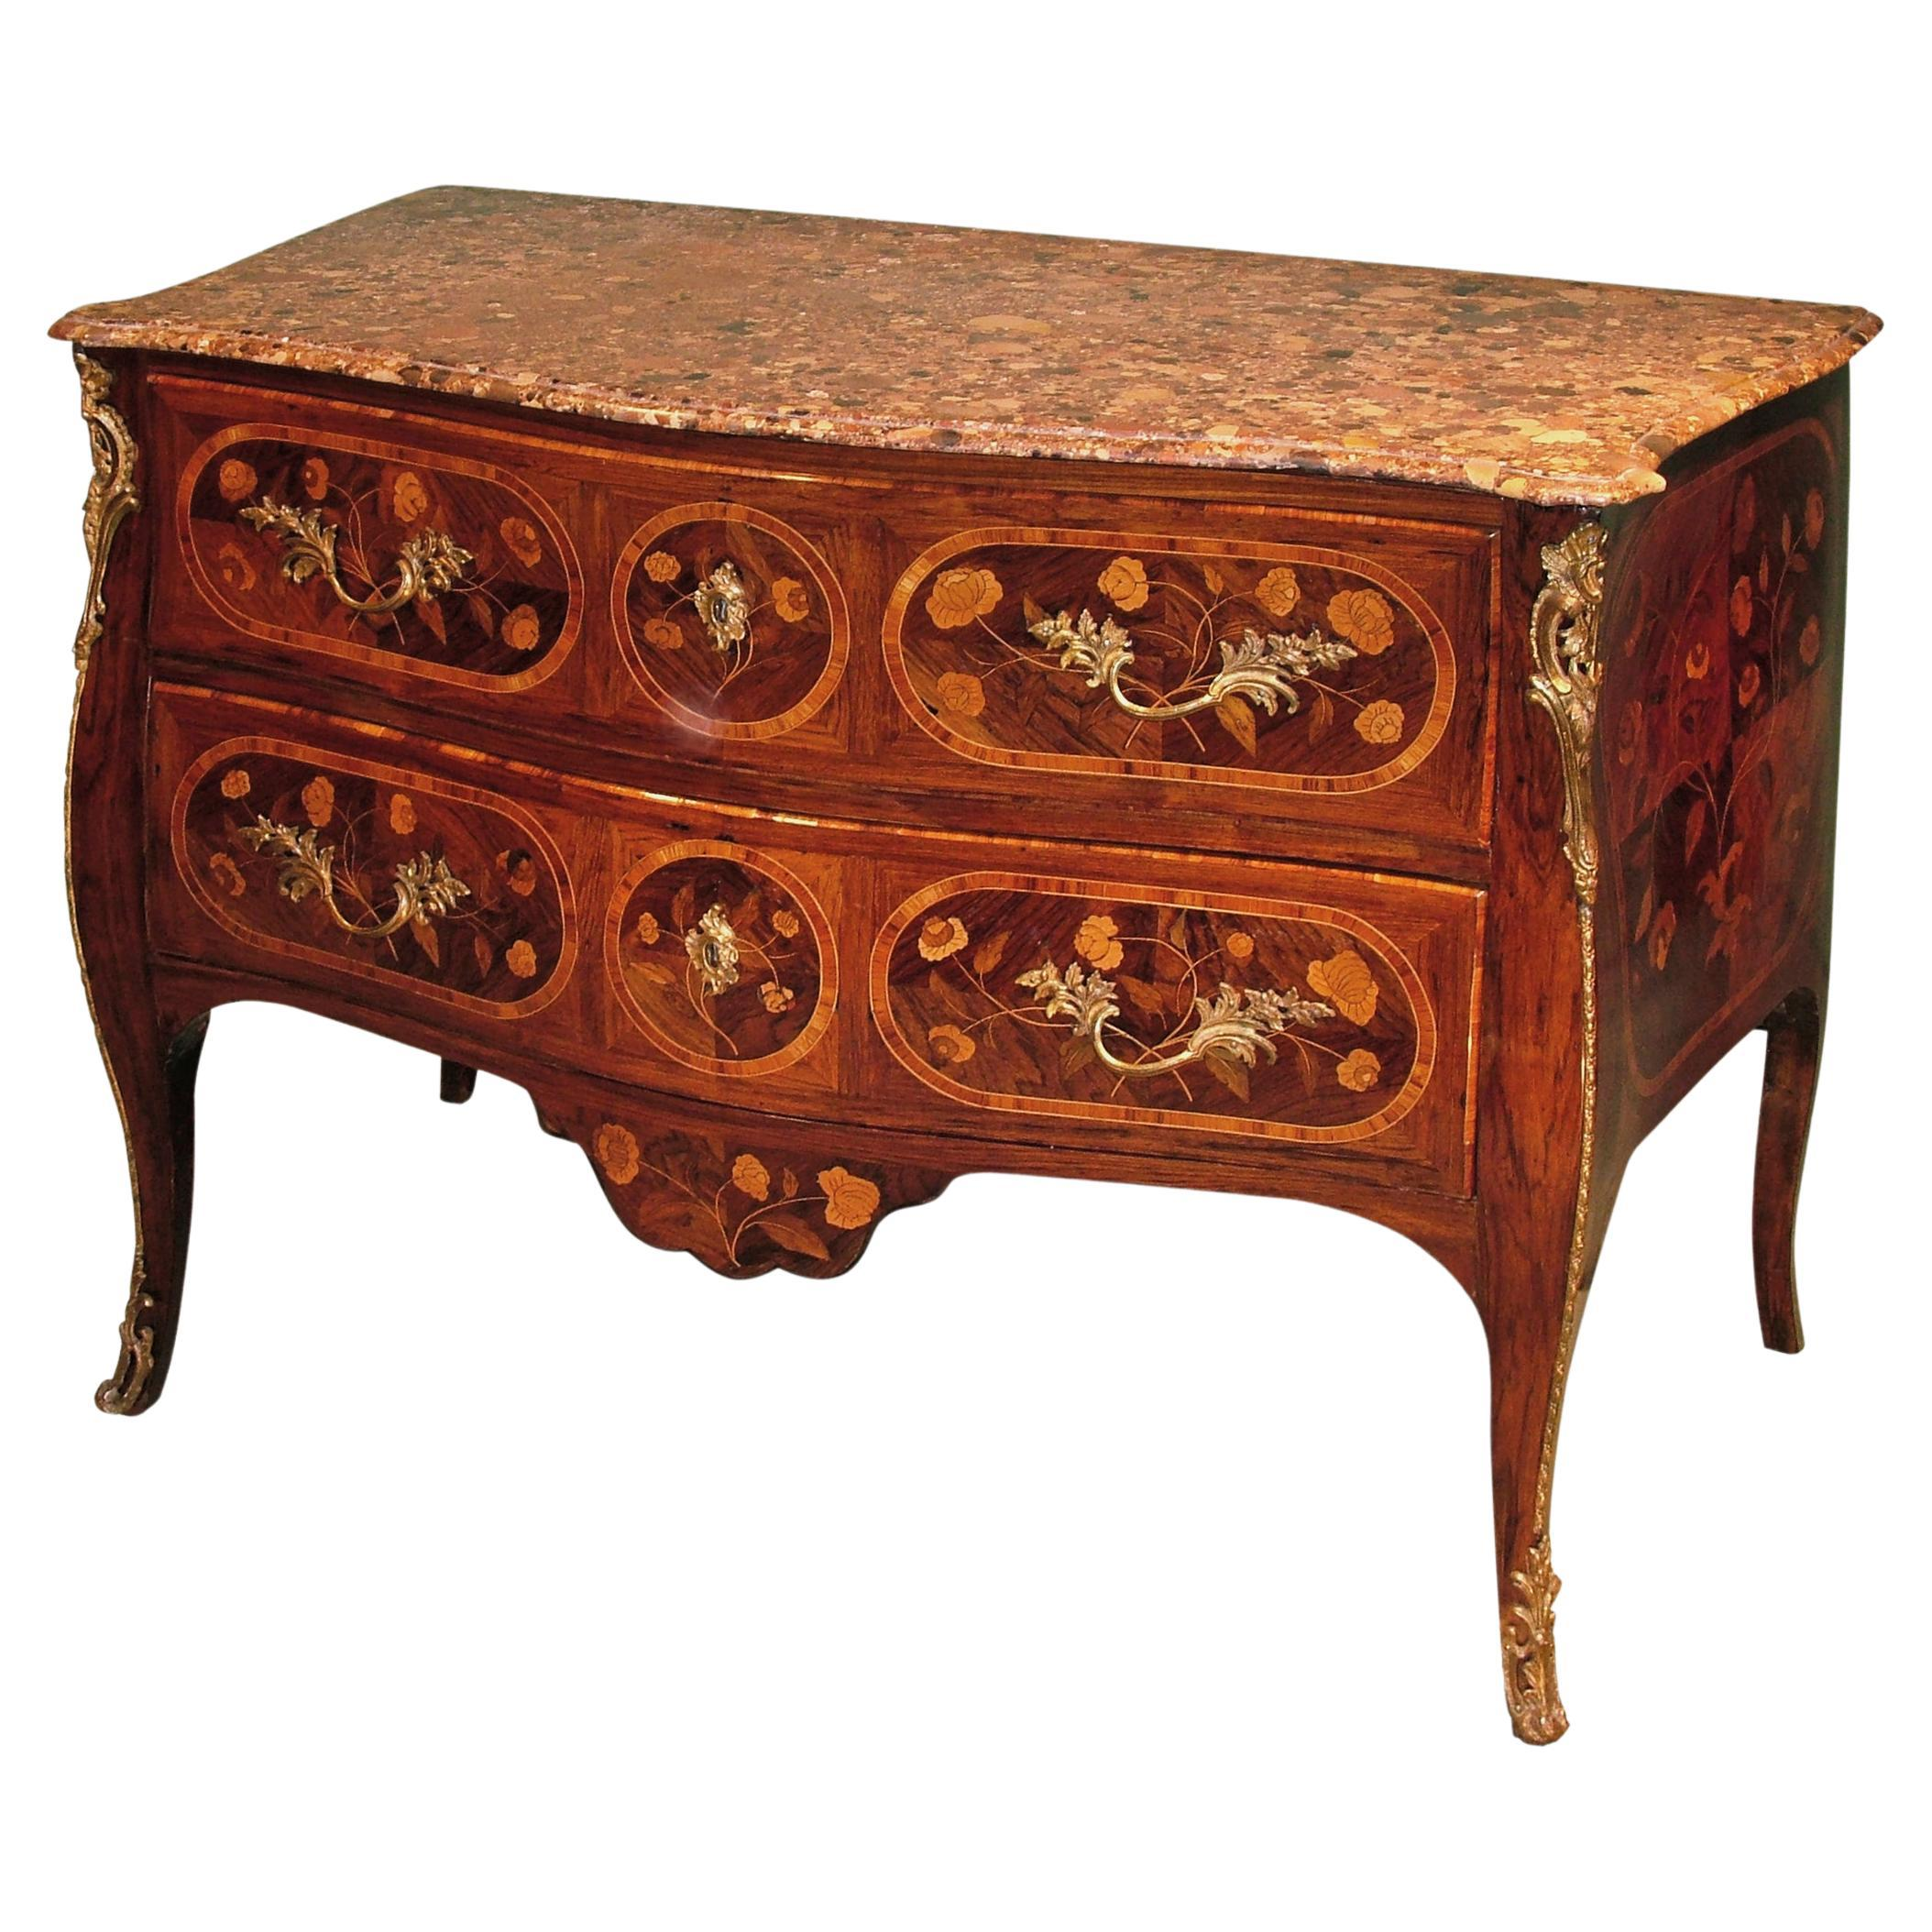 18th Century Portuguese Rosewood and Marquetry Serpentine Commode